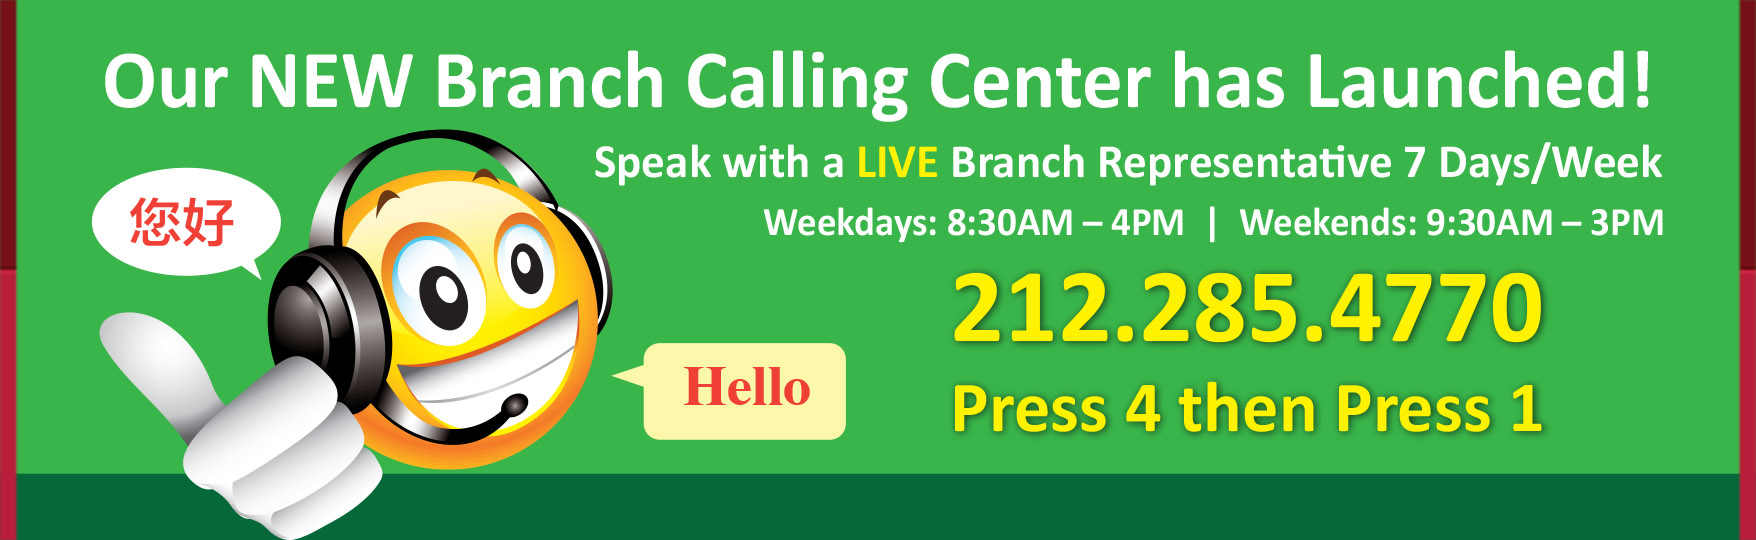 Our NEW Branch Calling Center has Launched! Speak with a LIVE Branch Representative 7 Days/Week Weekdays: 8:30AM – 4PM Weekends: 9:30AM – 3PM Our Representatives Speak Chinese and English